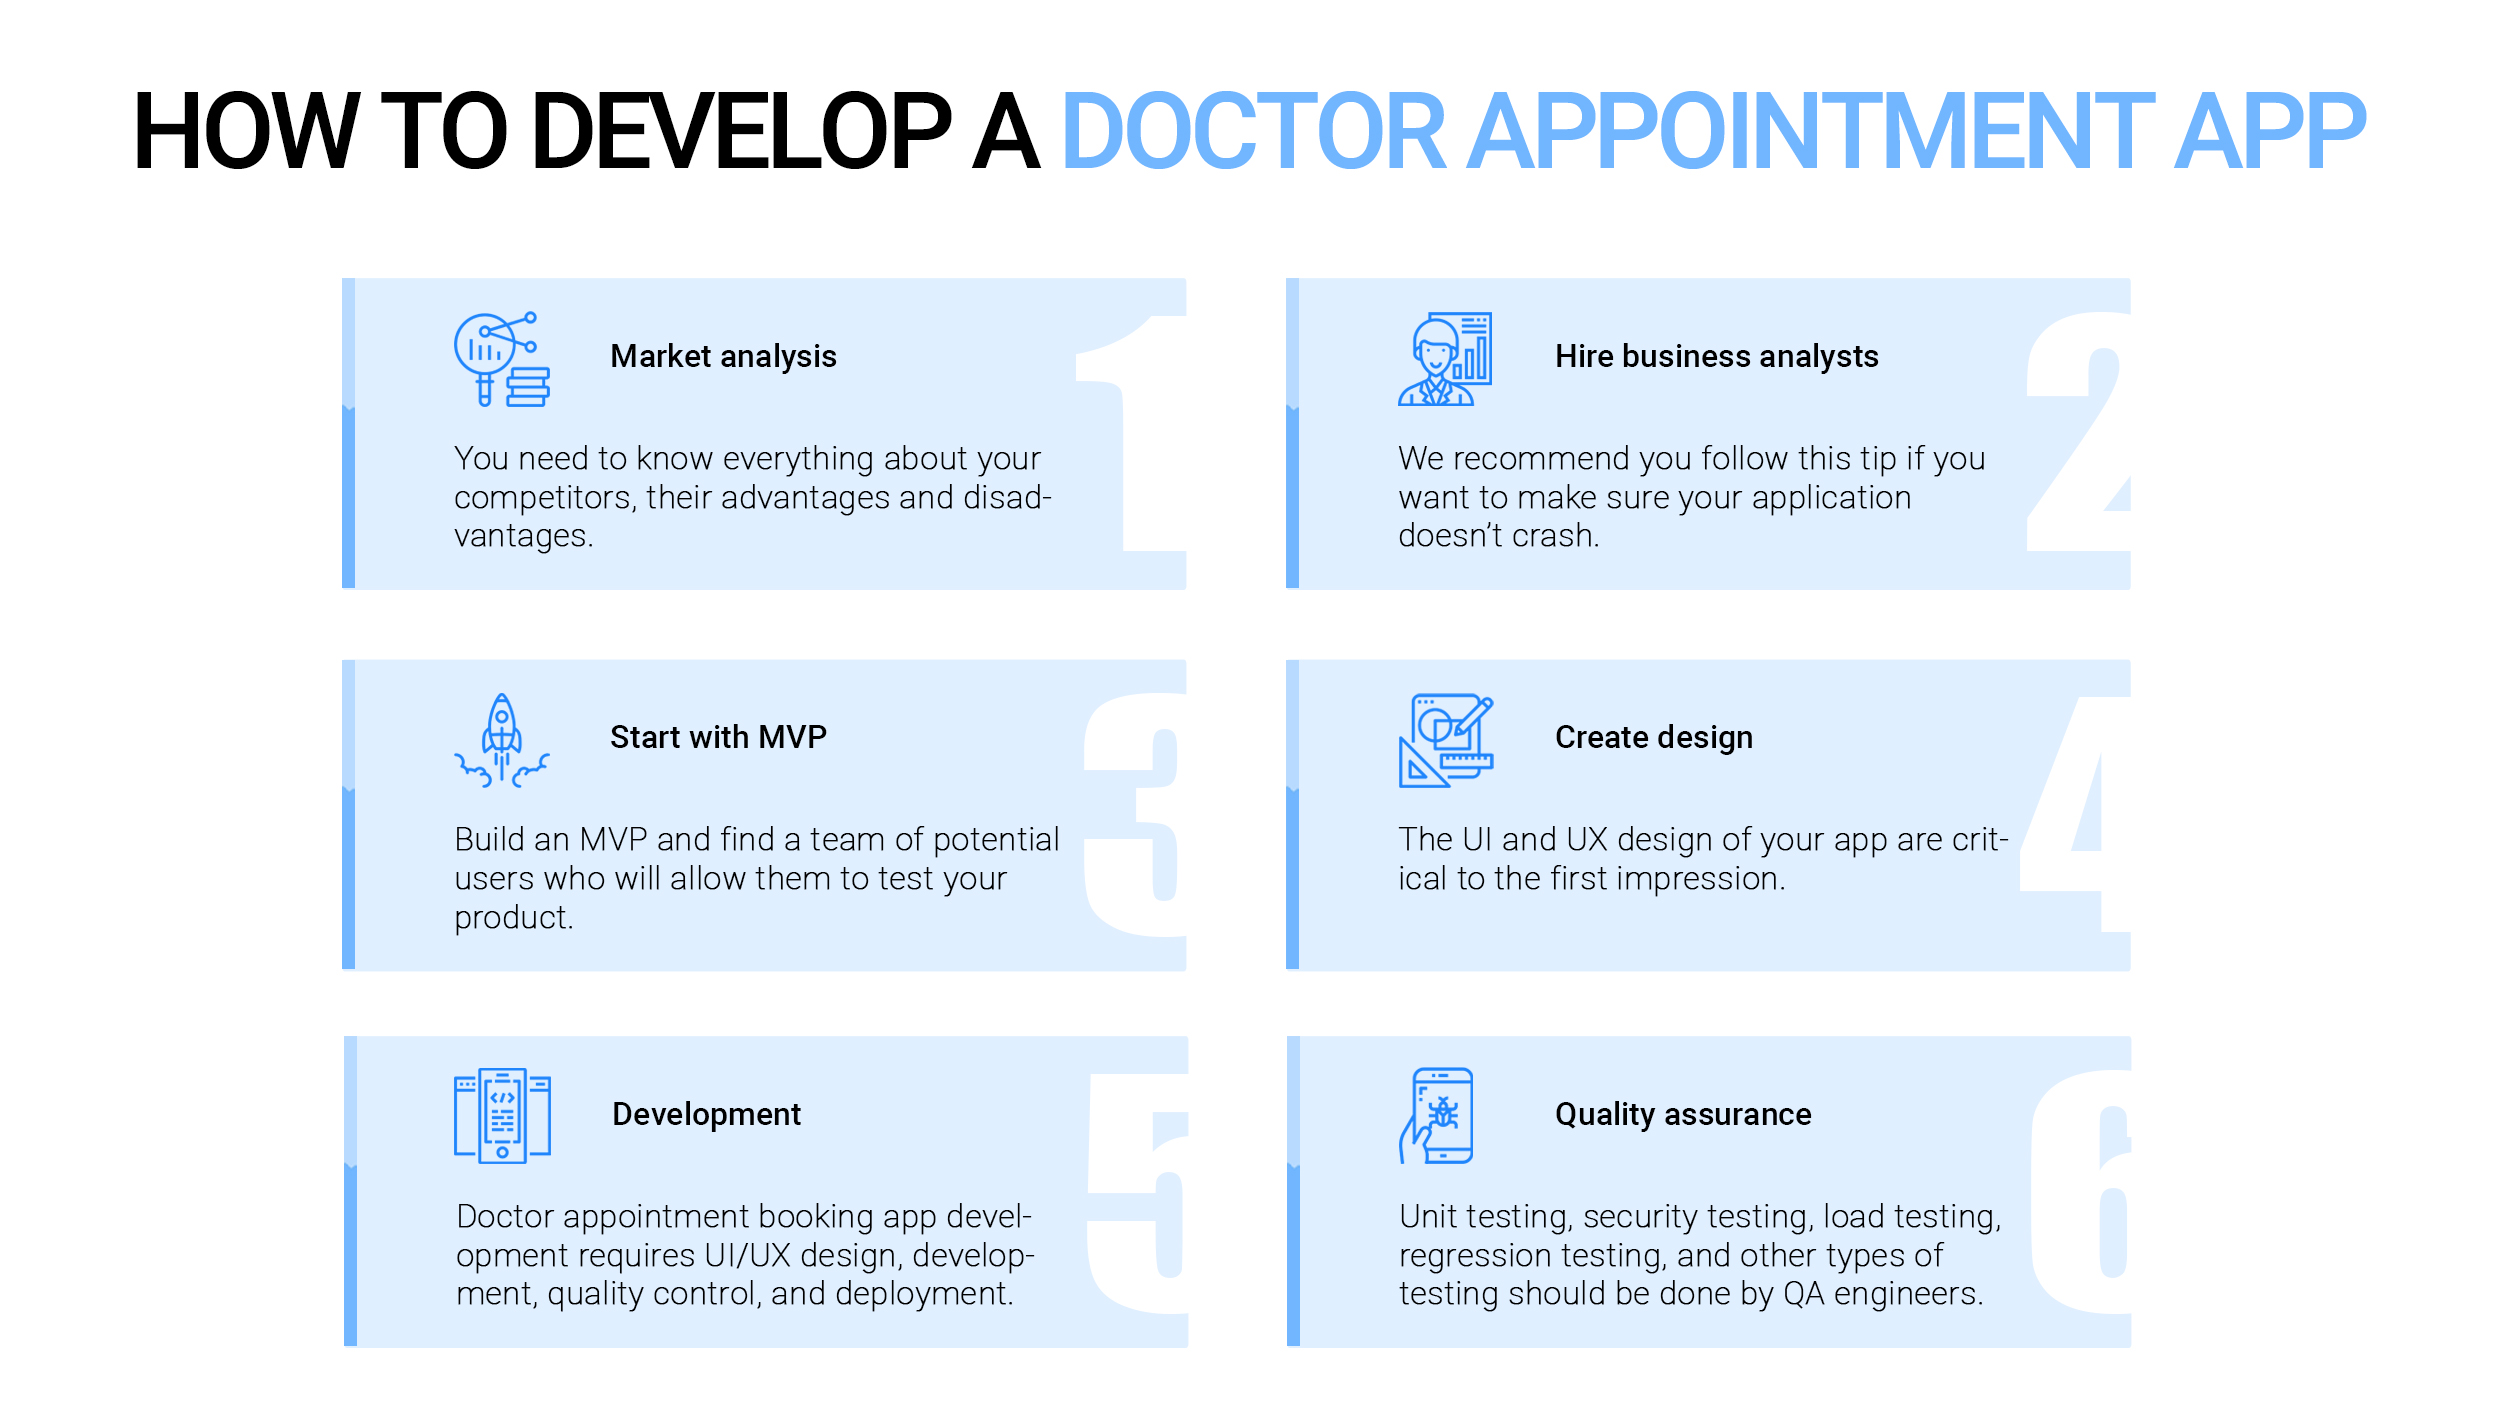 How to develop a doctor appointment booking app